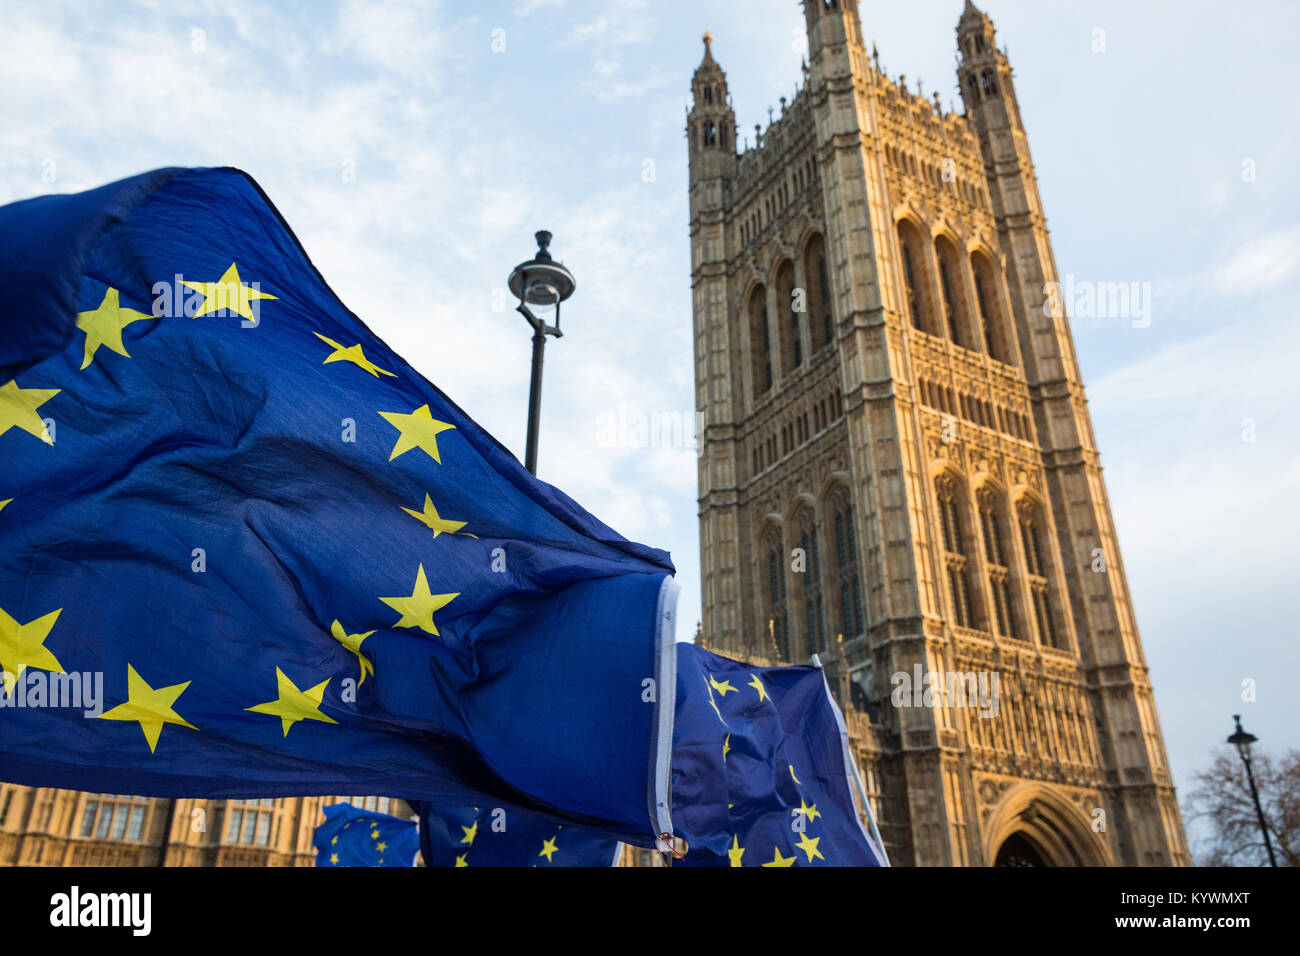 London, UK. 16th Jan, 2018. Anti-Brexit protesters from Sodem wave European Union flags and Union Jacks during a Stock Photo